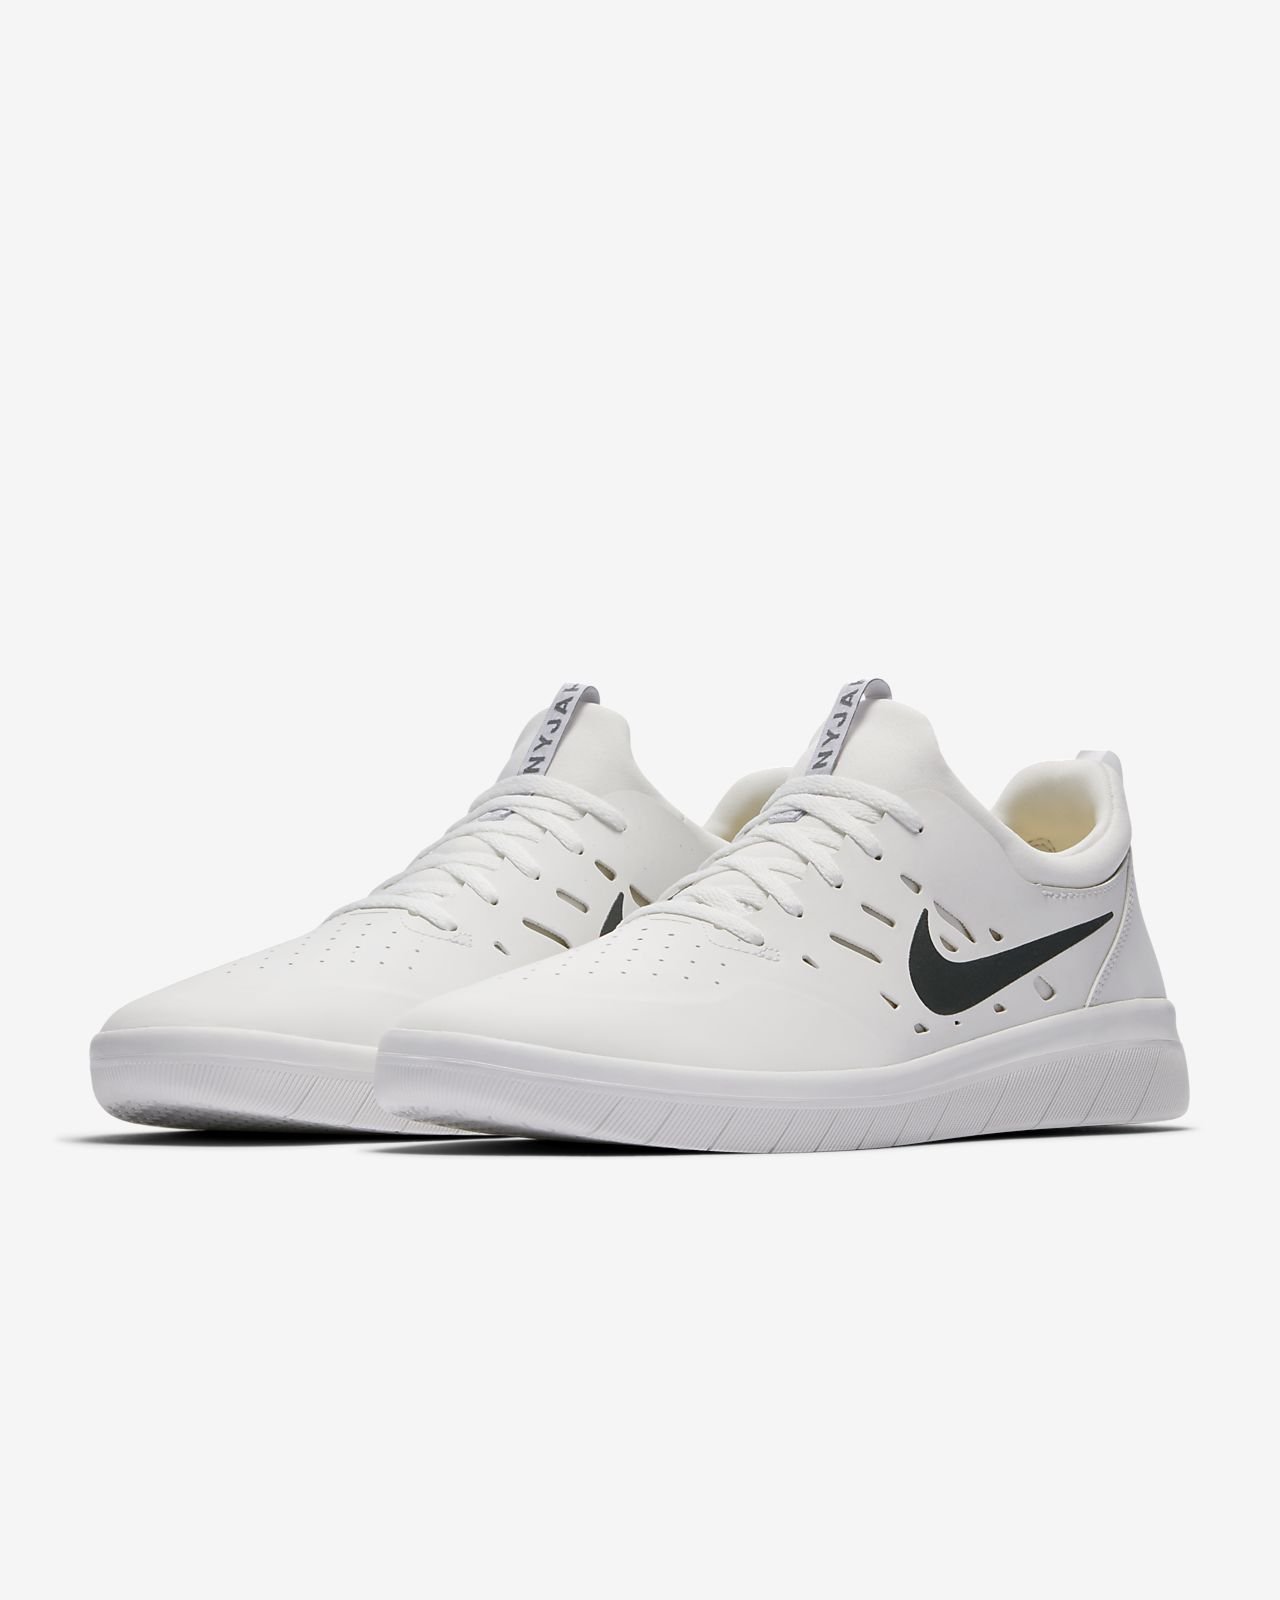 Best Sales Nike SB Nyjah Free Trainers Women Blue Skate